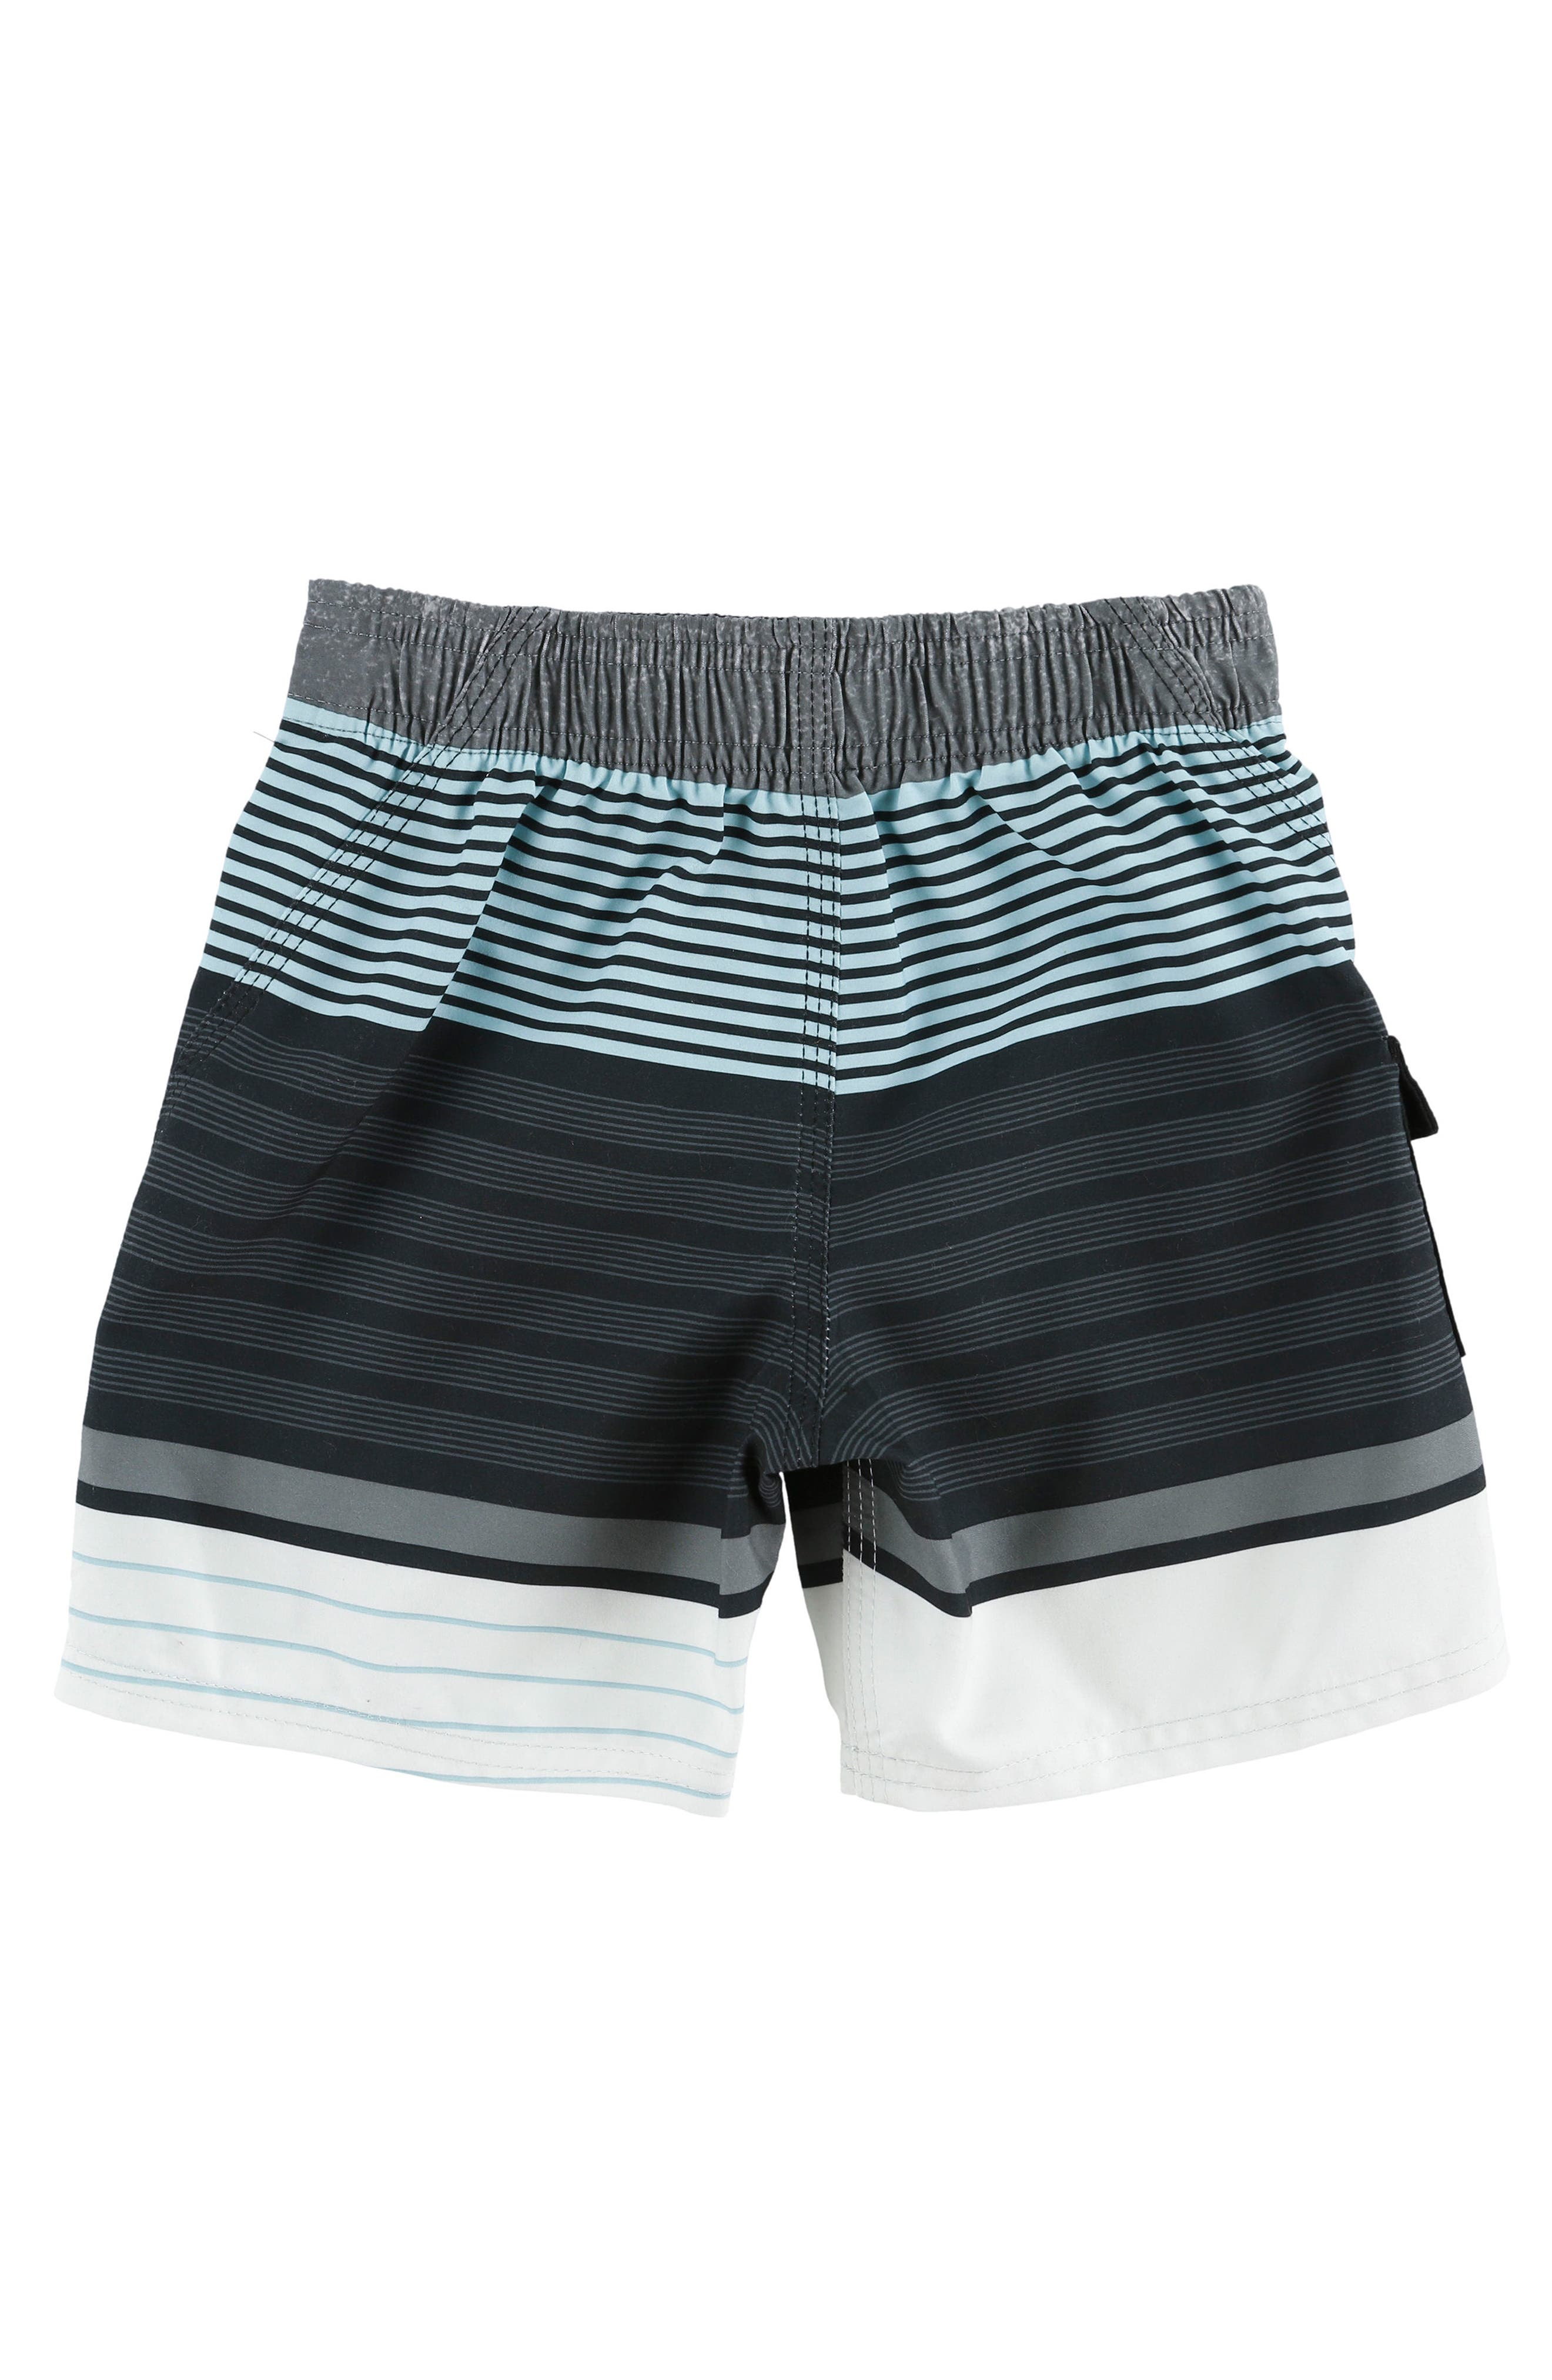 Lennox Stripe Board Shorts,                             Alternate thumbnail 2, color,                             020